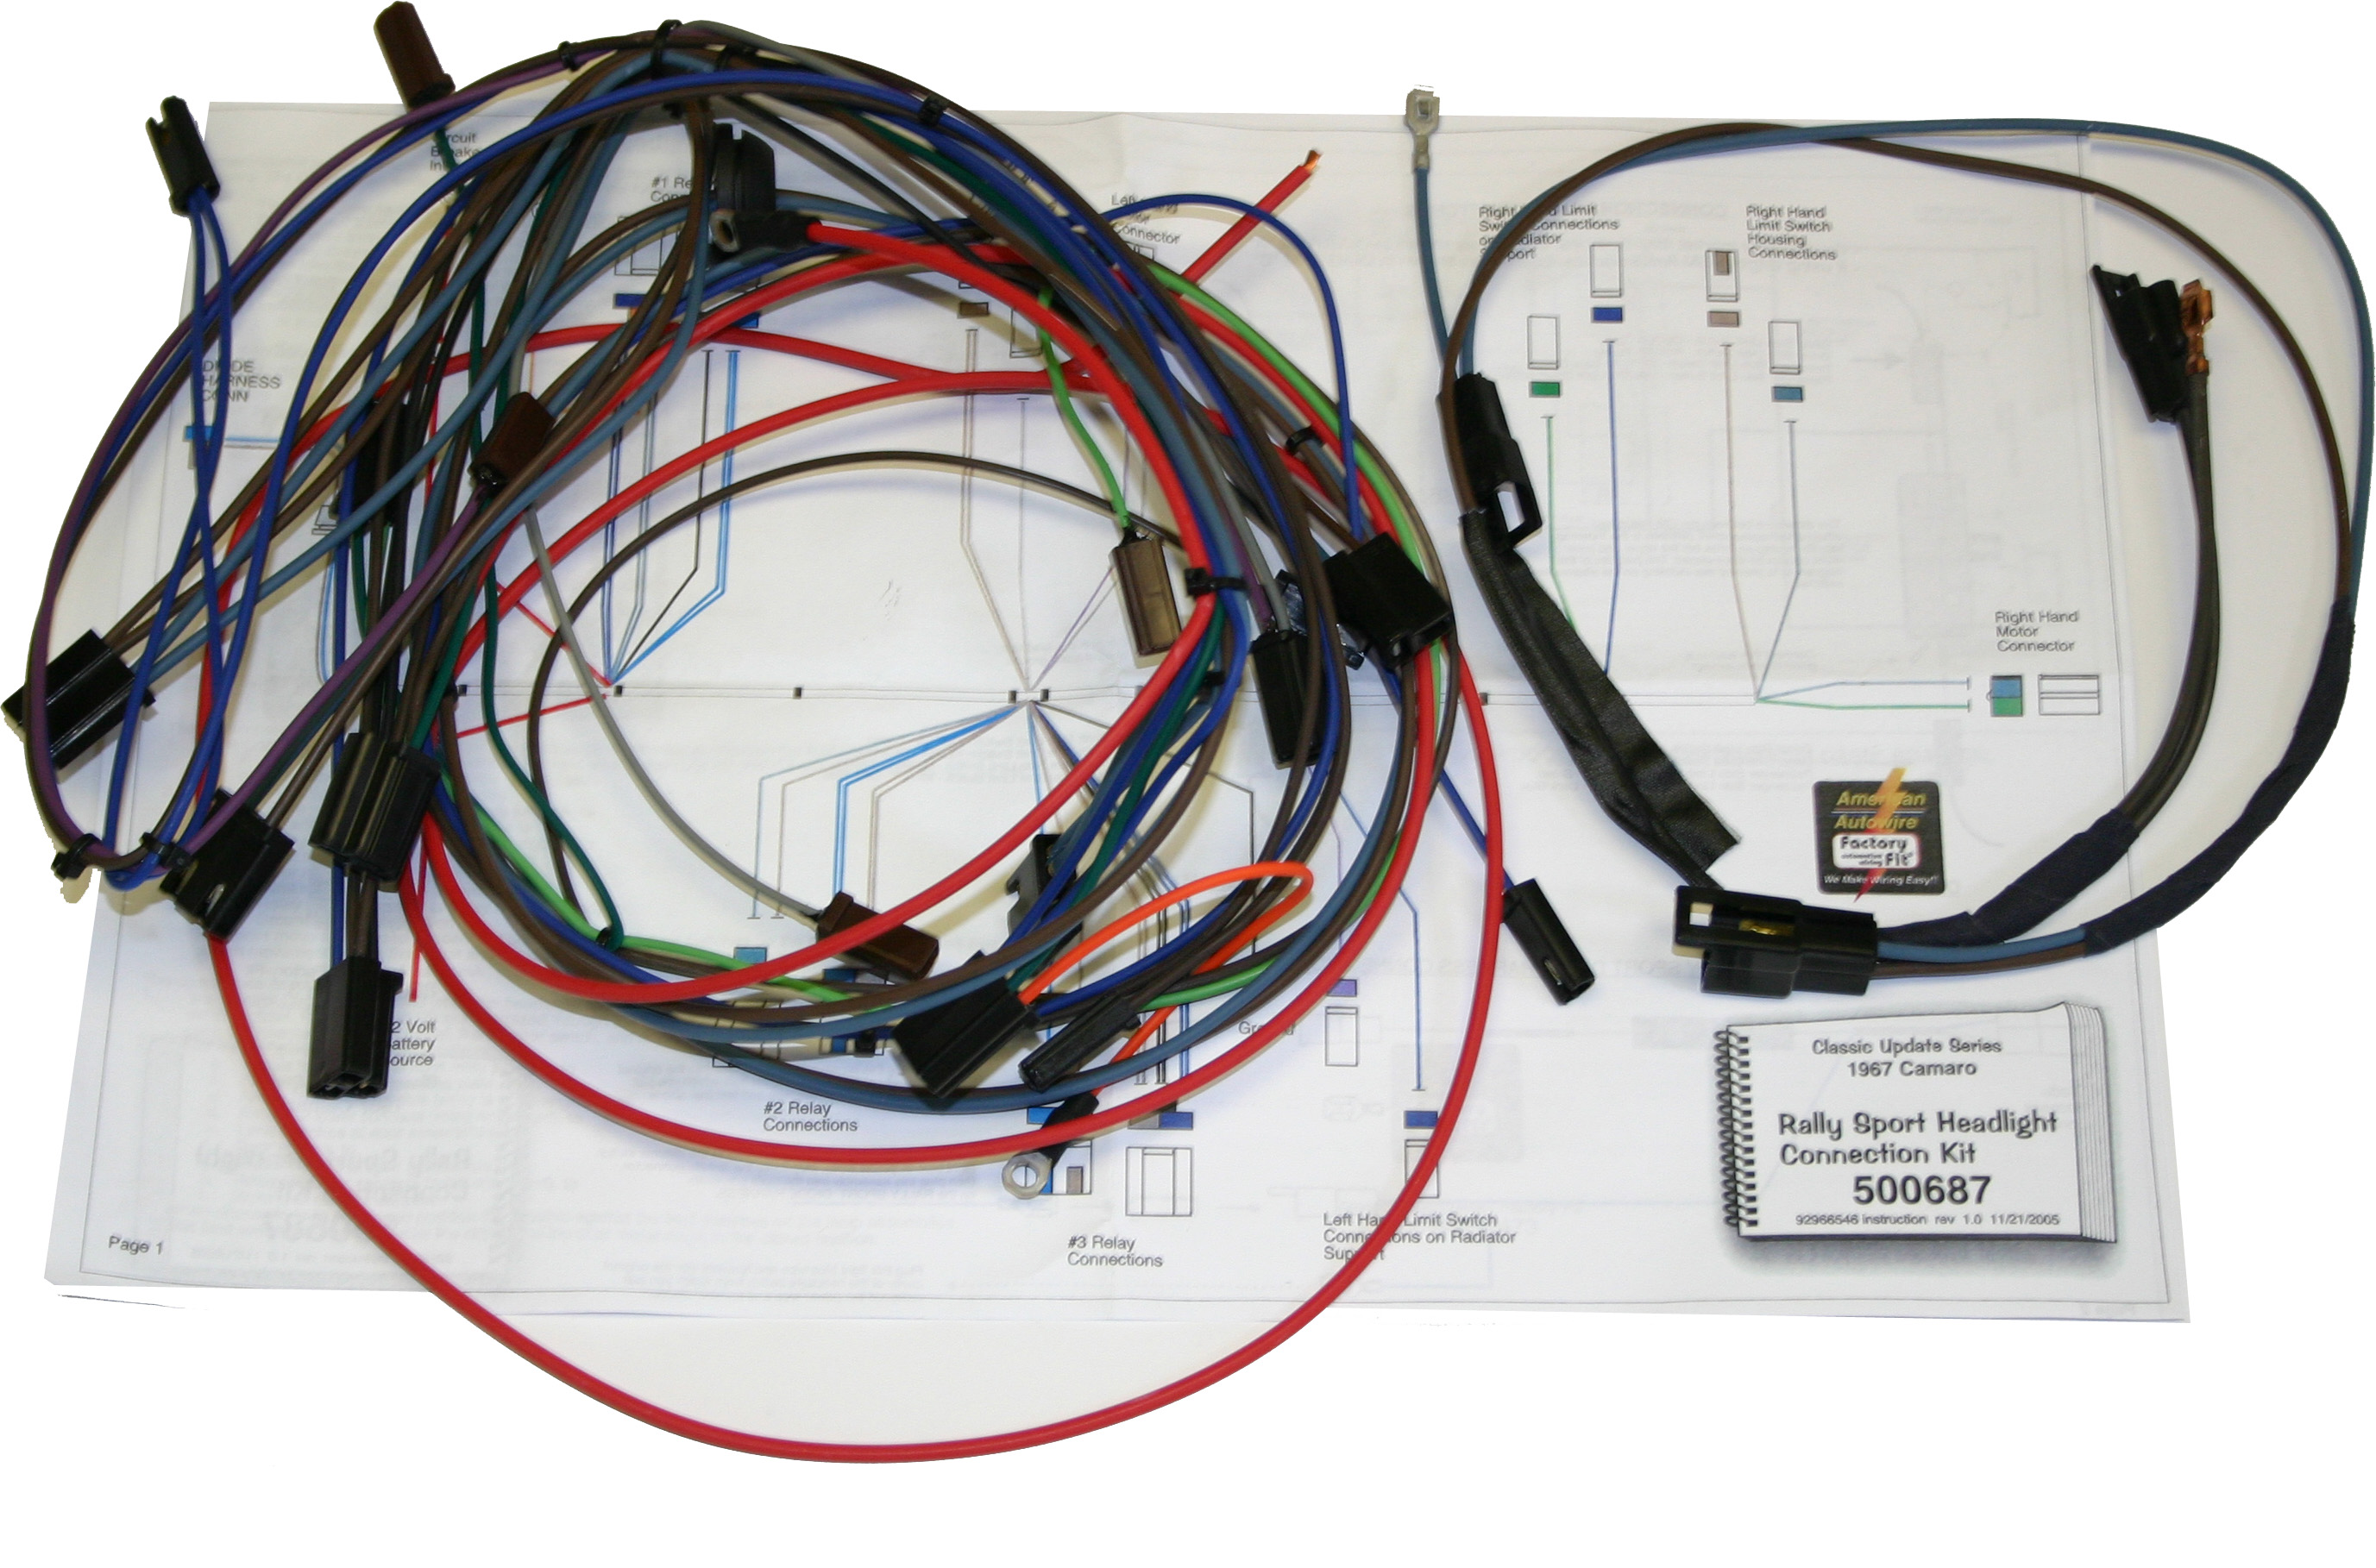 500773 67 68 camaro firebird classic update wiring harness 500661 1967 firebird wiring harness at gsmx.co